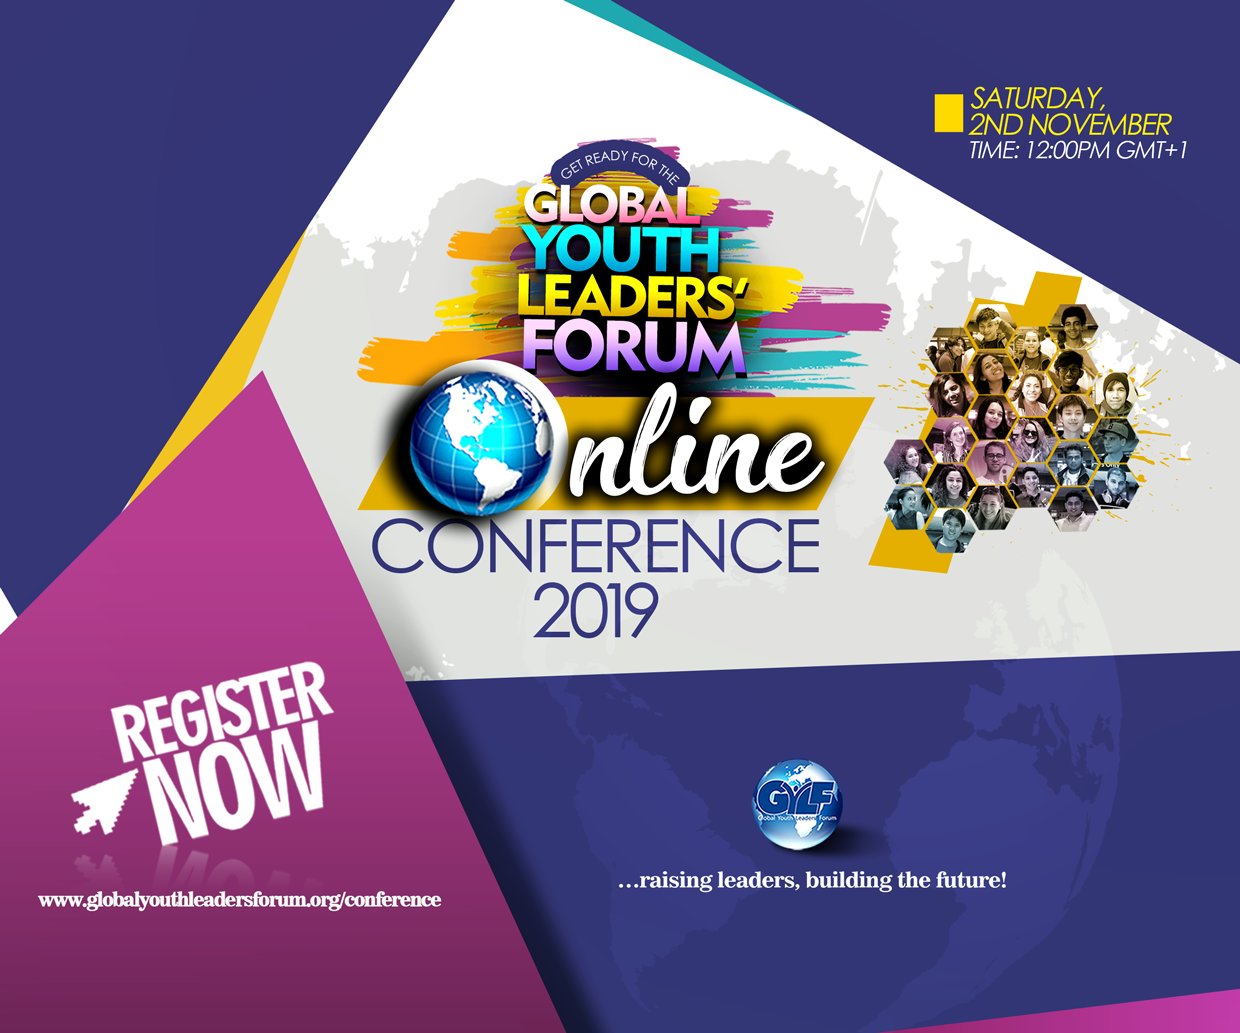 THE GYLF ONLINE CONFERENCE 2019 IS HERE AGAIN!